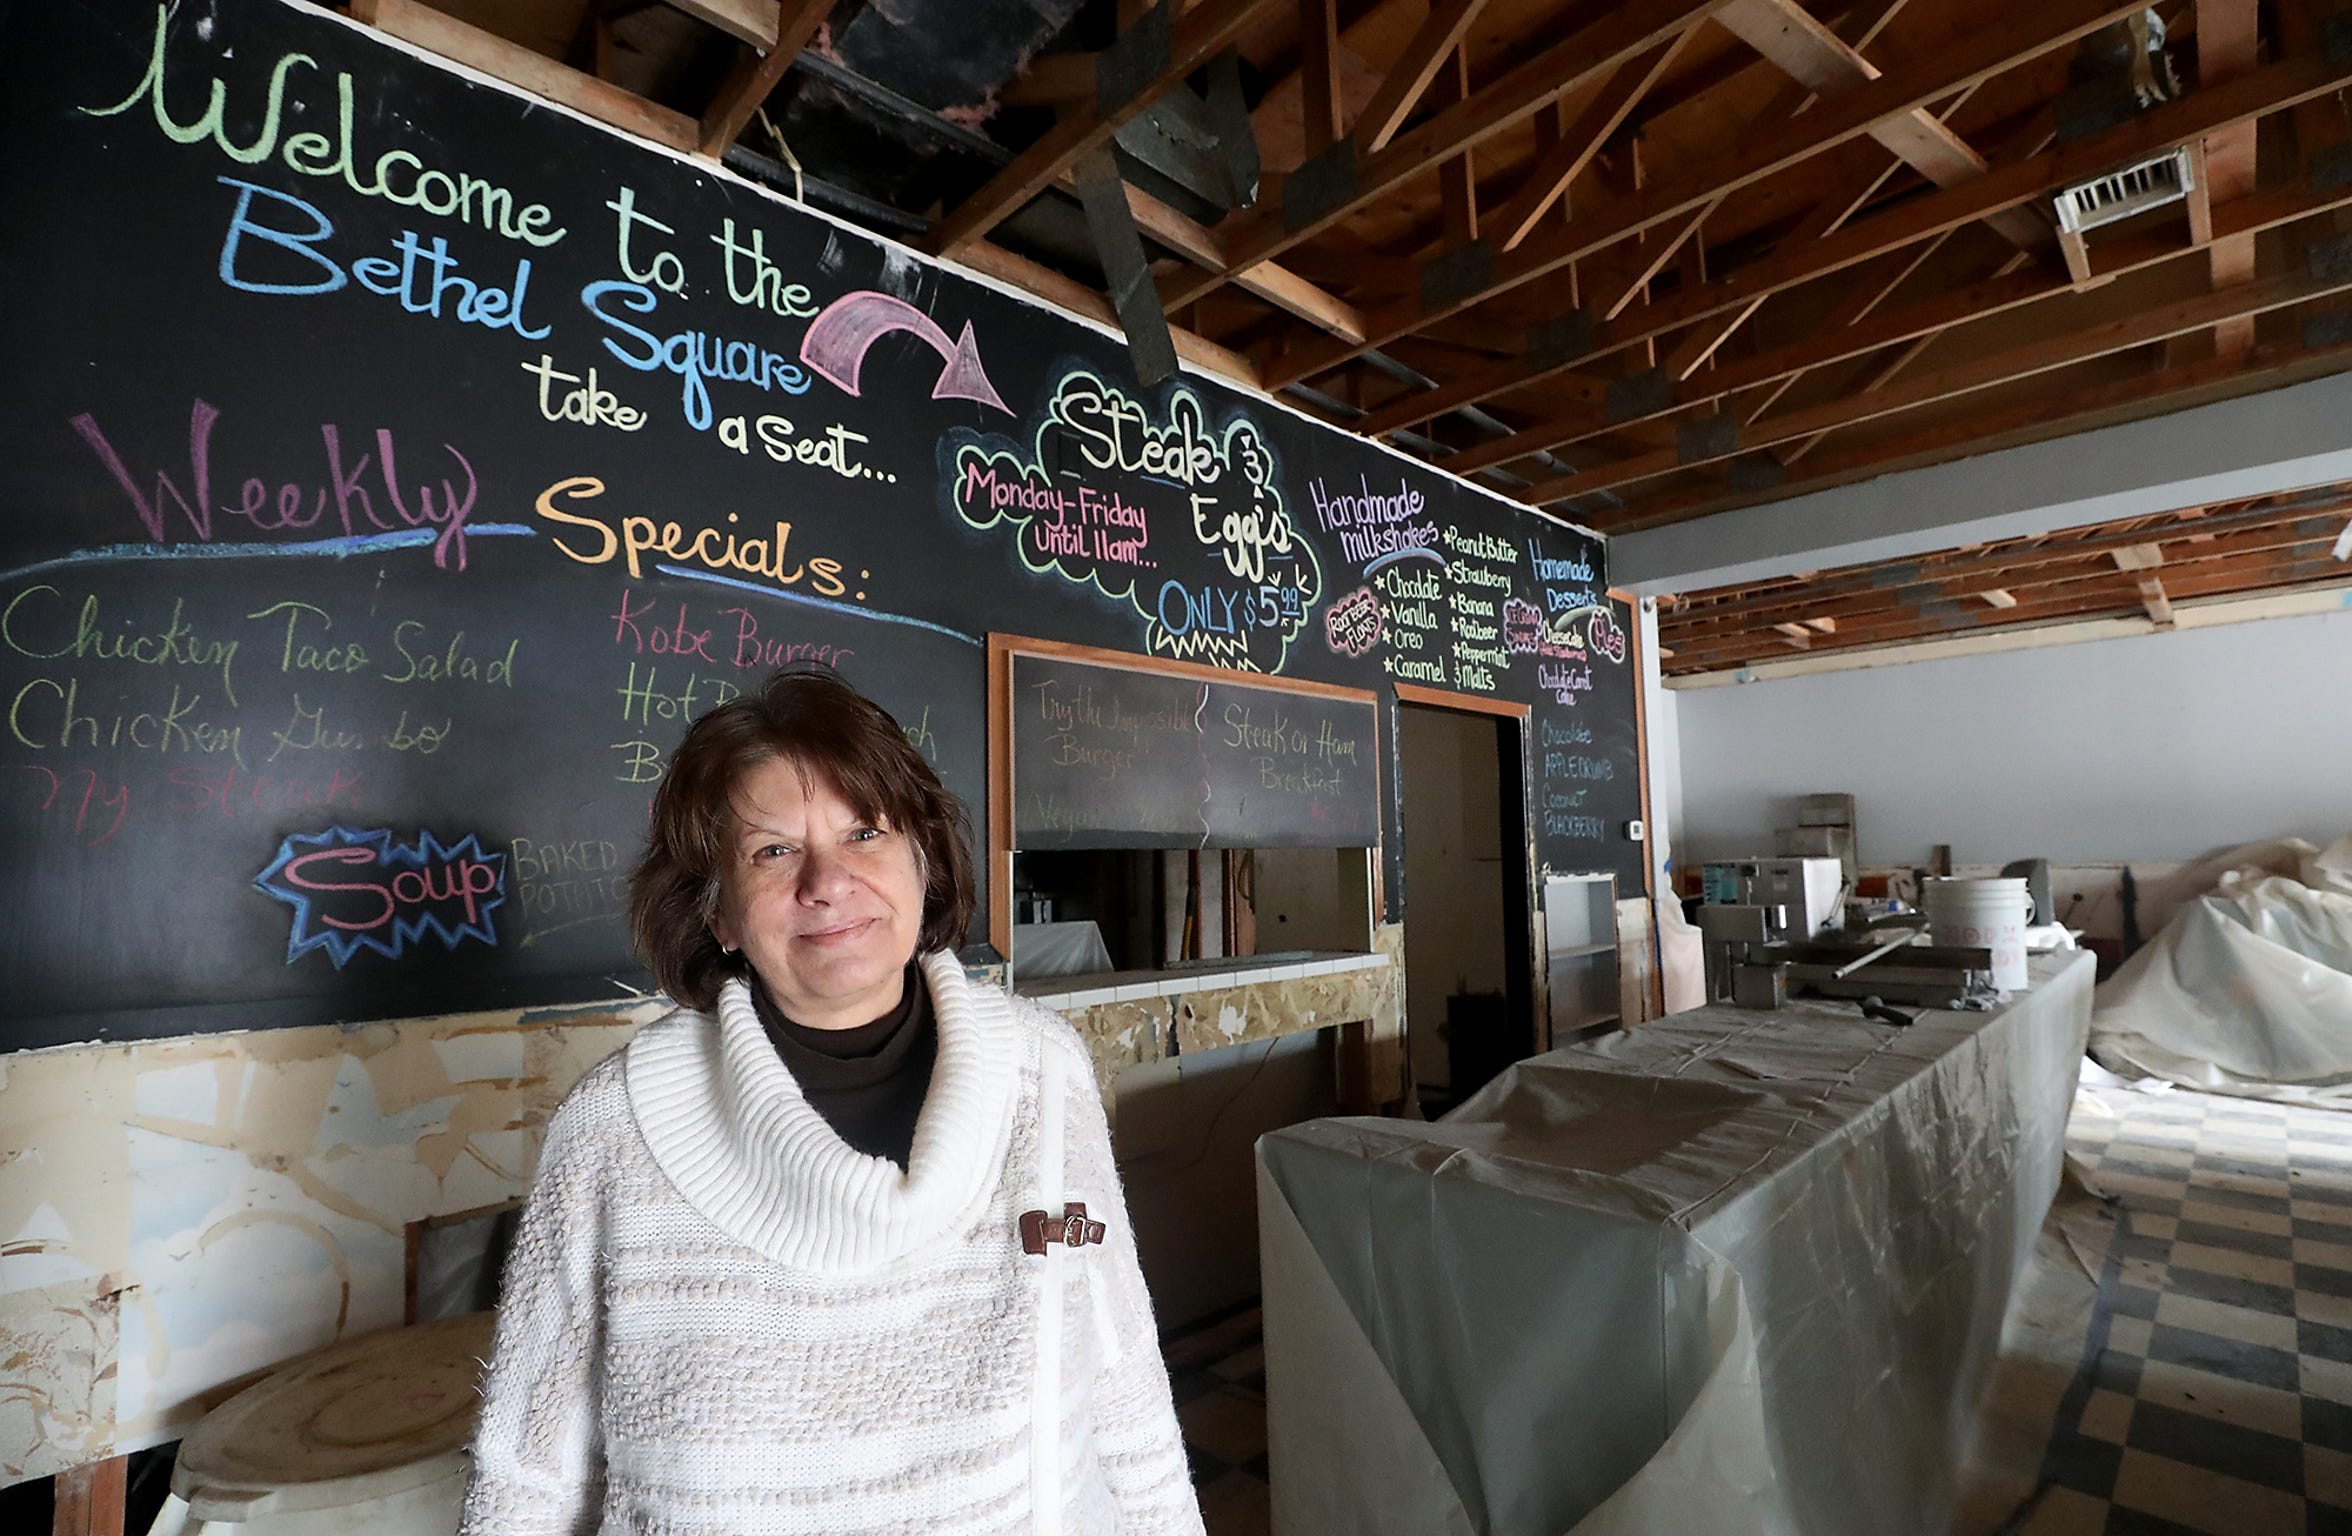 Shari Patrick inside her Bethel Square Restaurant & Lounge, which is undergoing repairs after the December 2018 tornado destroyed the business. She is hoping to reopen the business in April, and in the meantime is trying to occupy herself by testing recipes in her home kitchen and refreshing the menu.